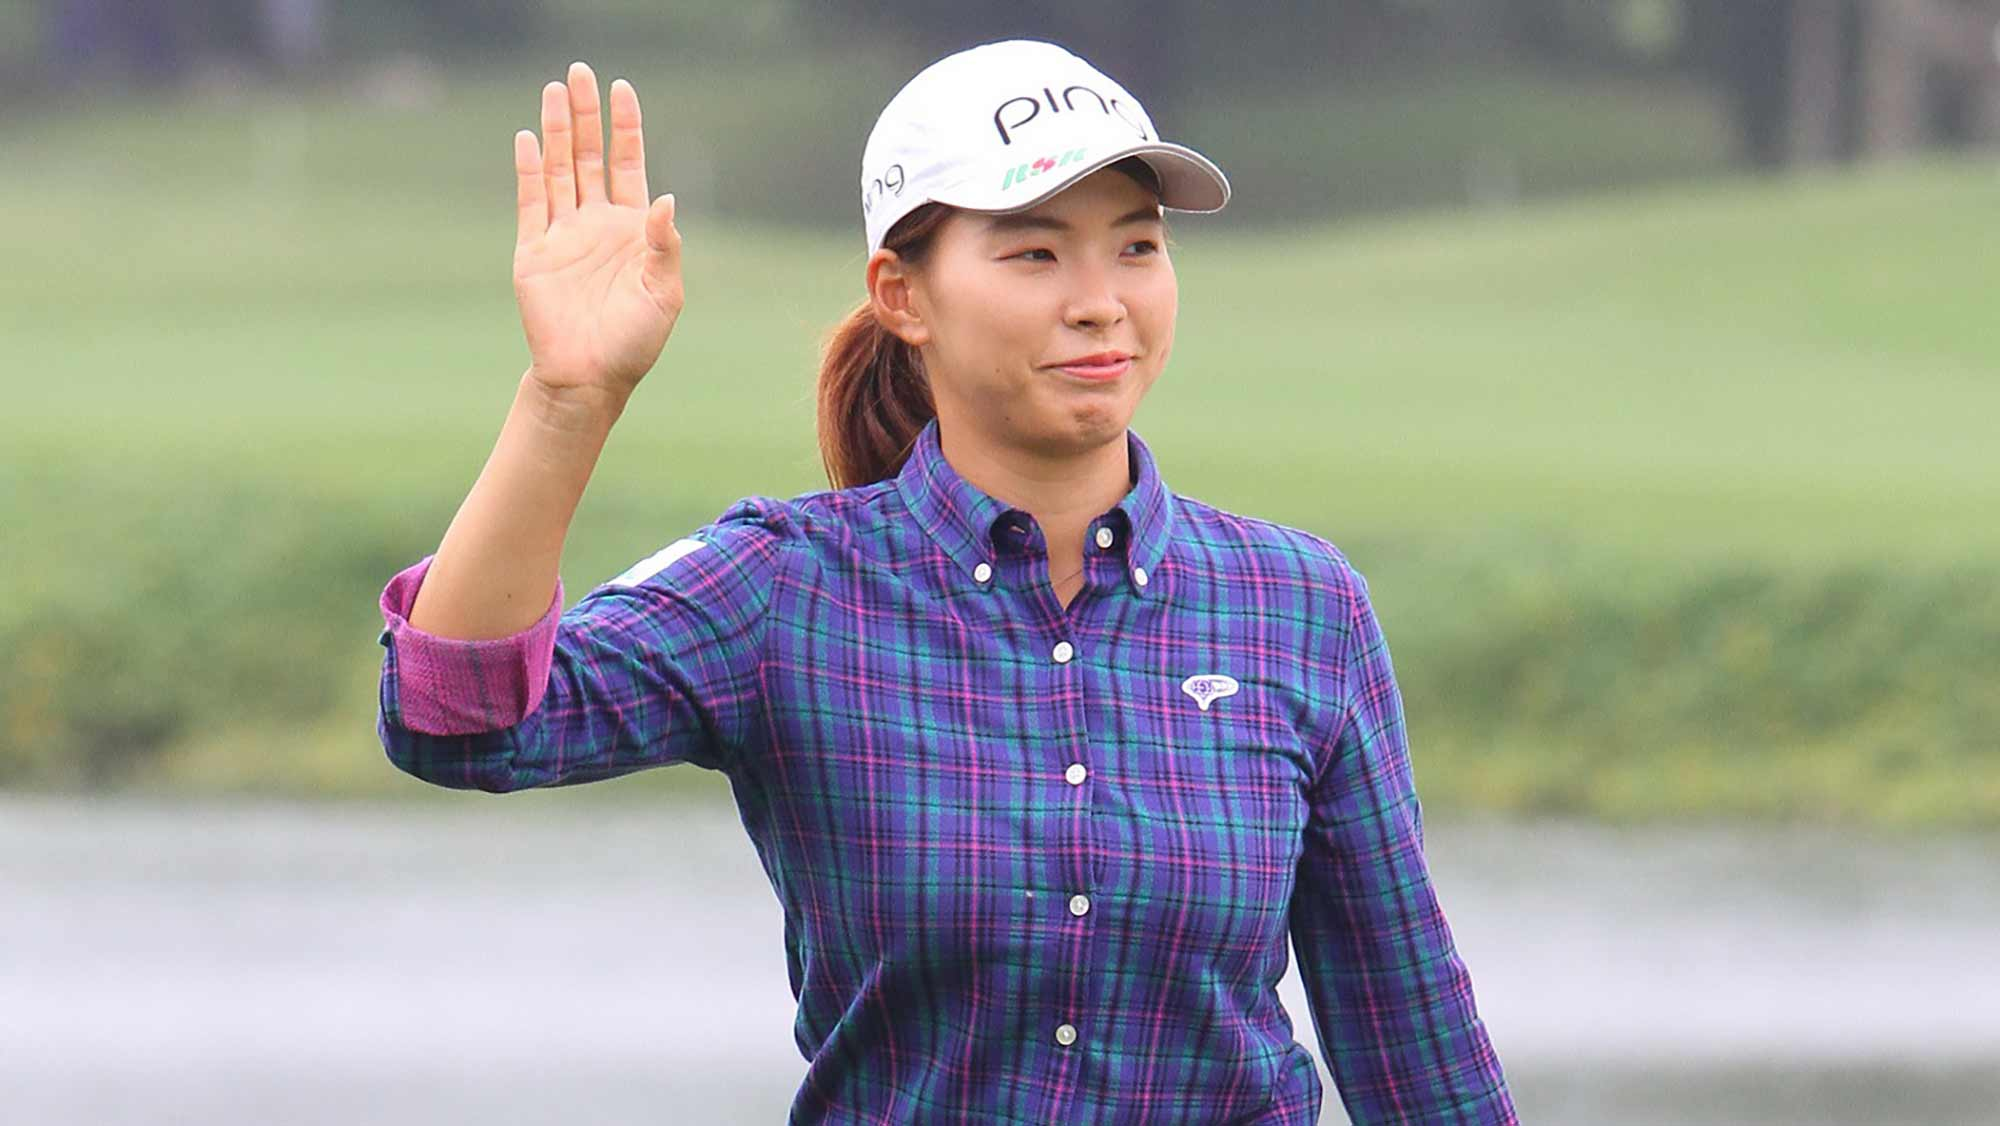 Hinako Shibuno waves during a practice round at the 2019 Taiwan Swinging Skirts LPGA presented by CTBC